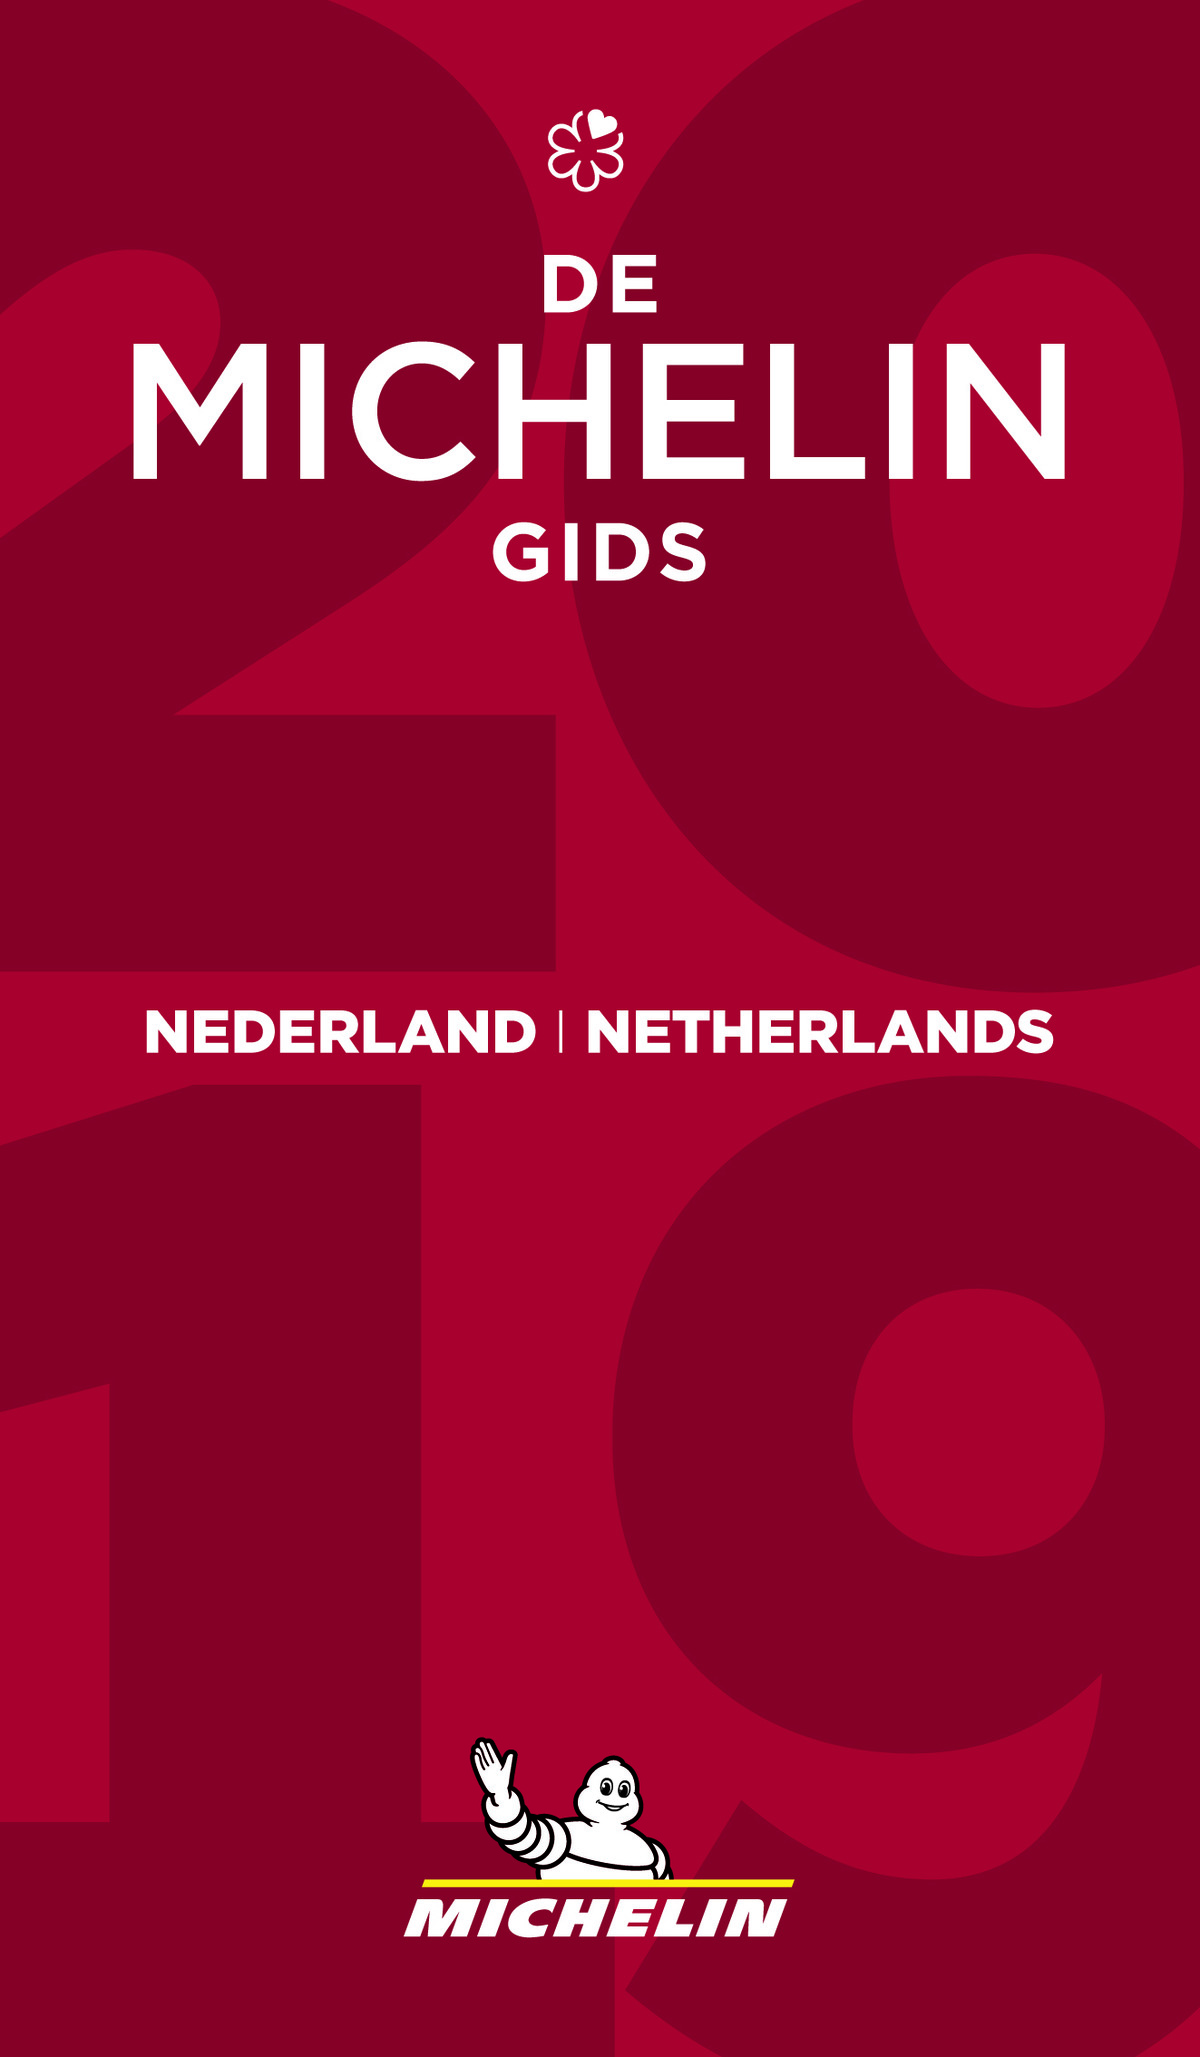 Pure Keuken Vught Guide Michelin Niederlande 2019